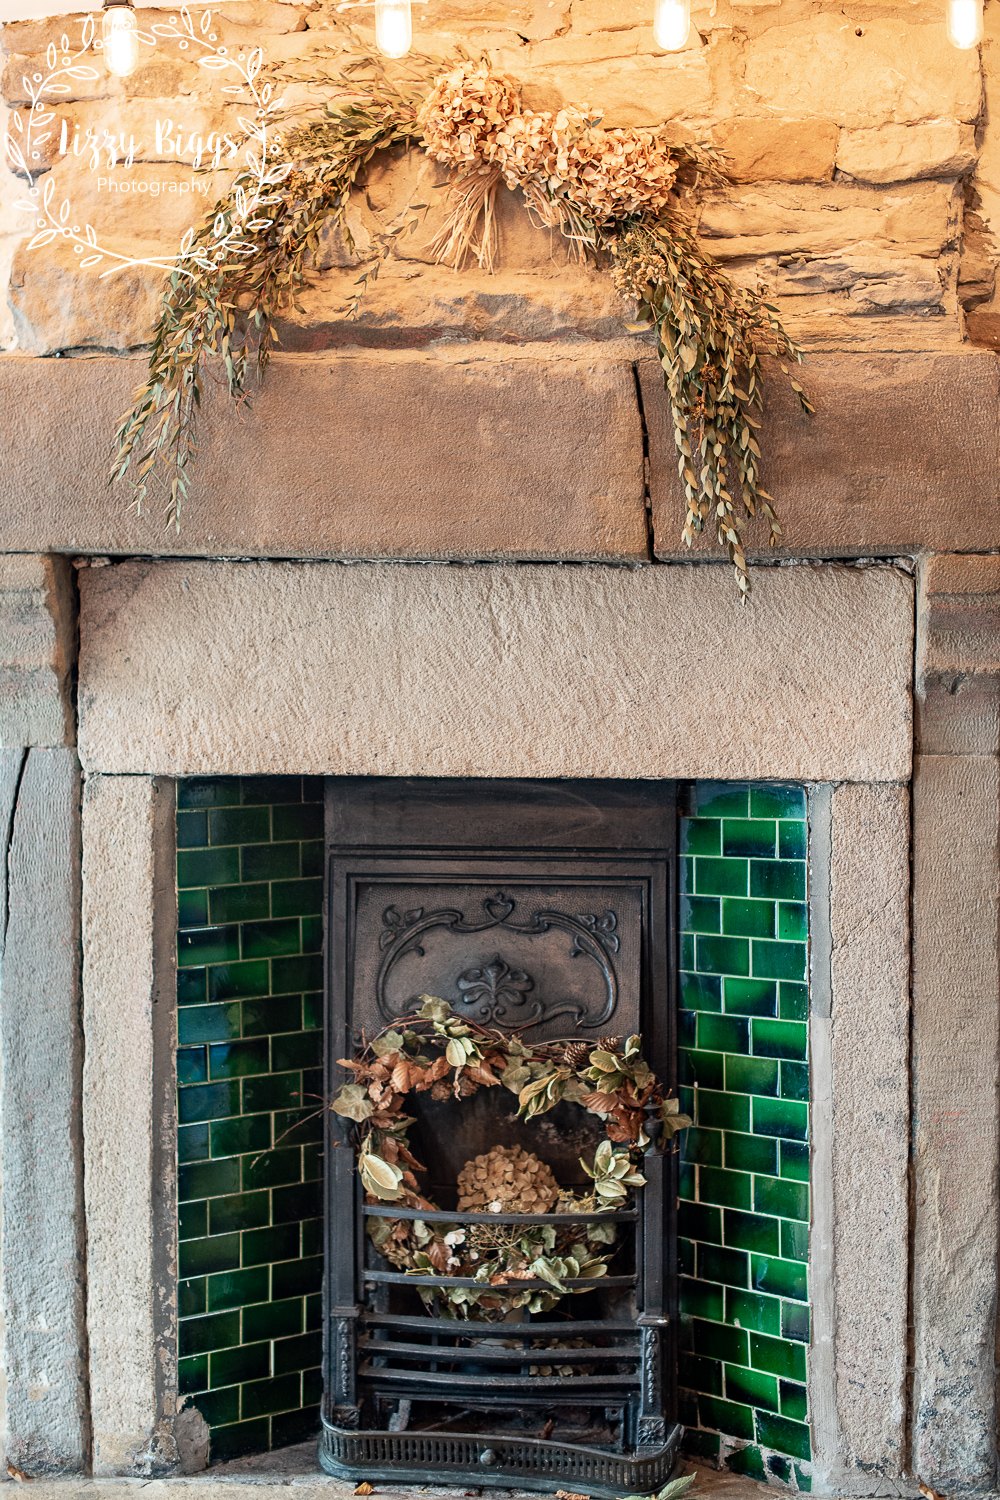 Lizzy_Biggs_Photography_Grass_Hopper_Cafe_Fire_place_detail